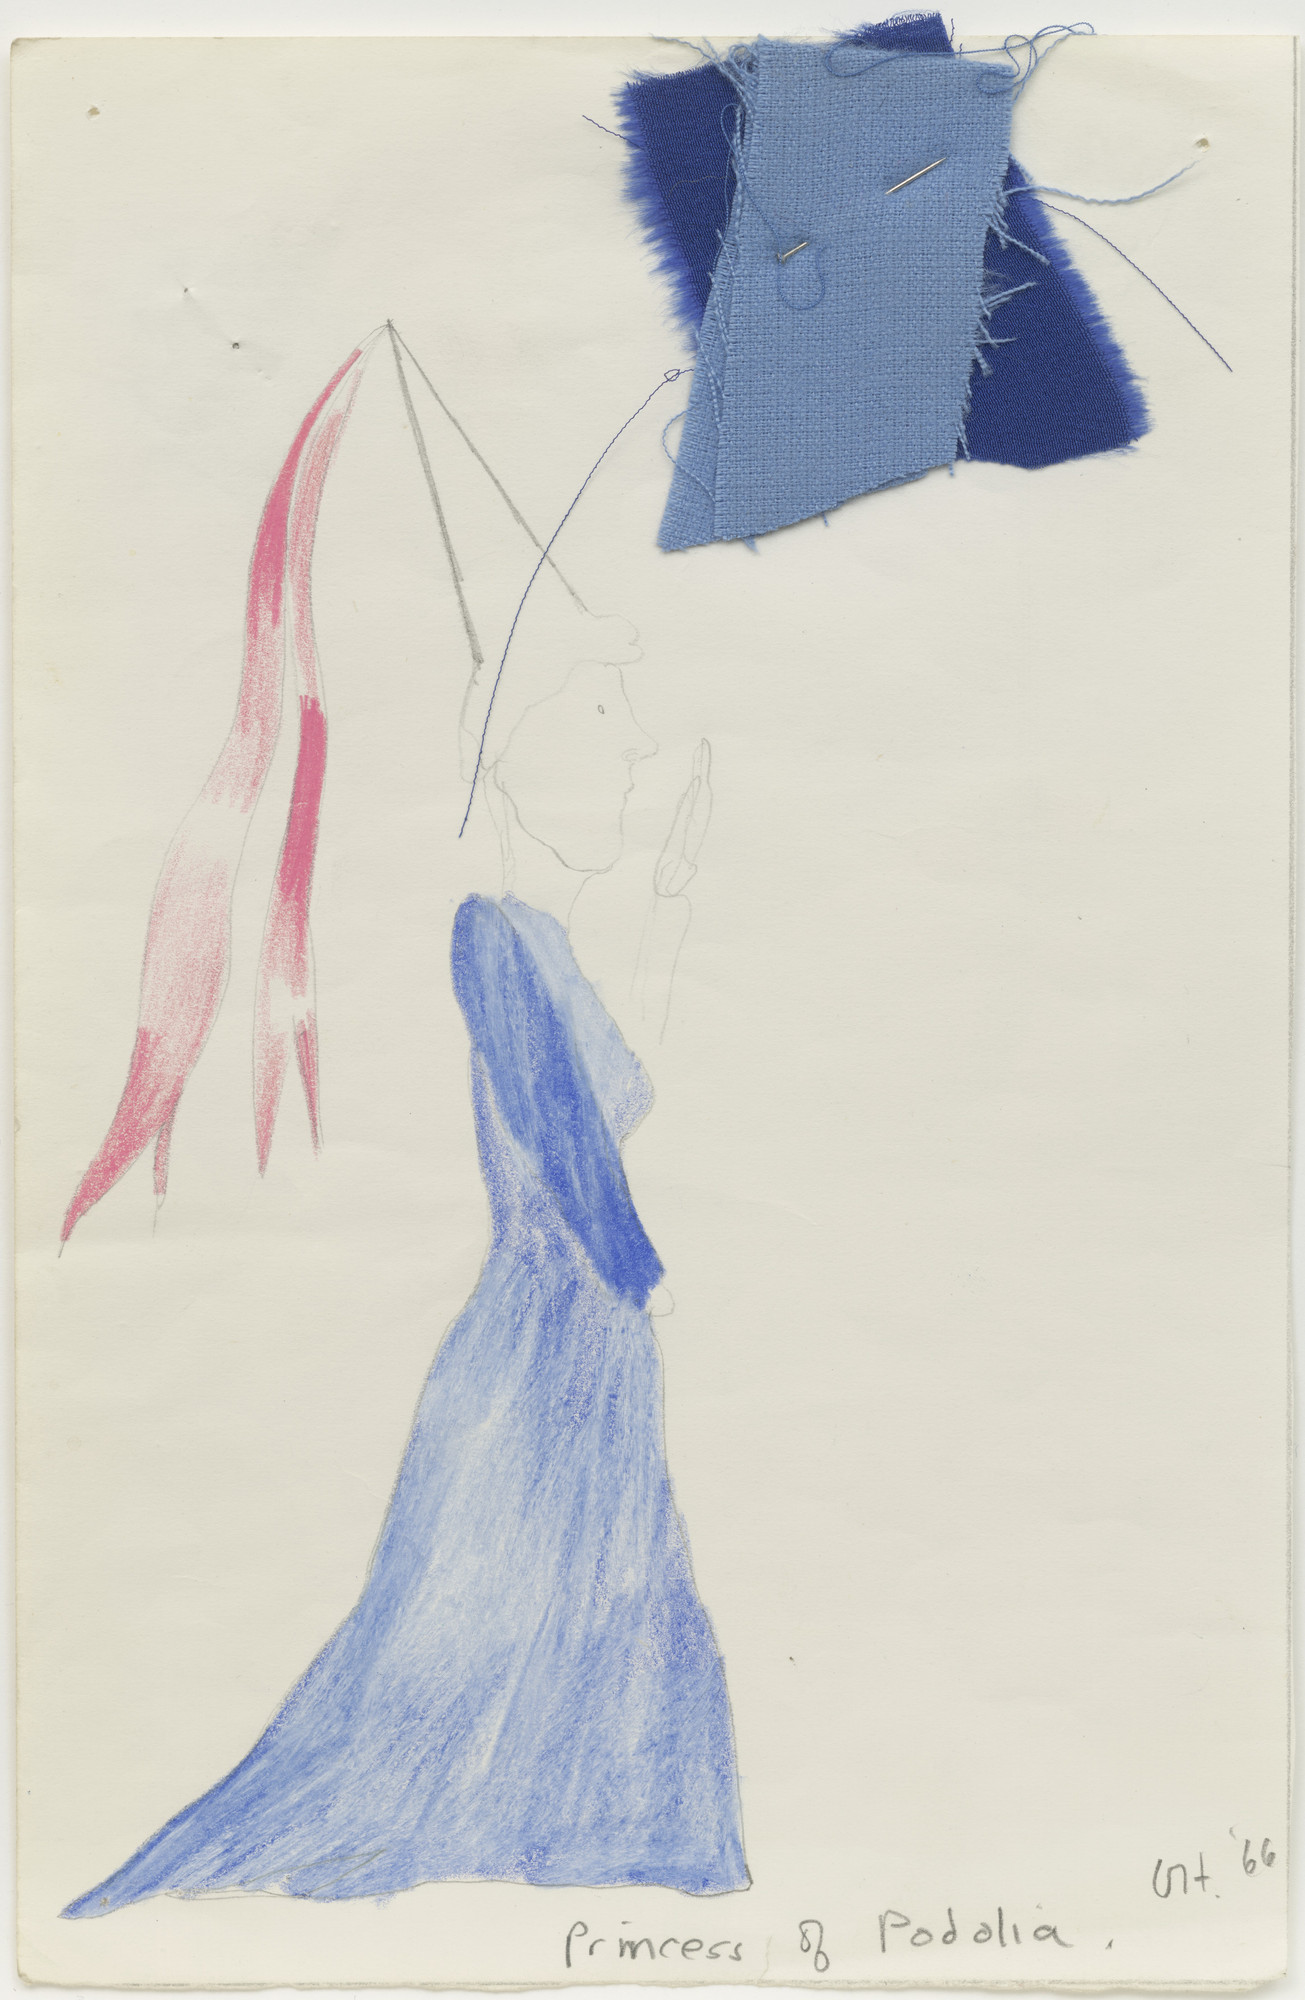 David Hockney. Princess of Podolia. Costume design for the play Ubu Roi. 1966